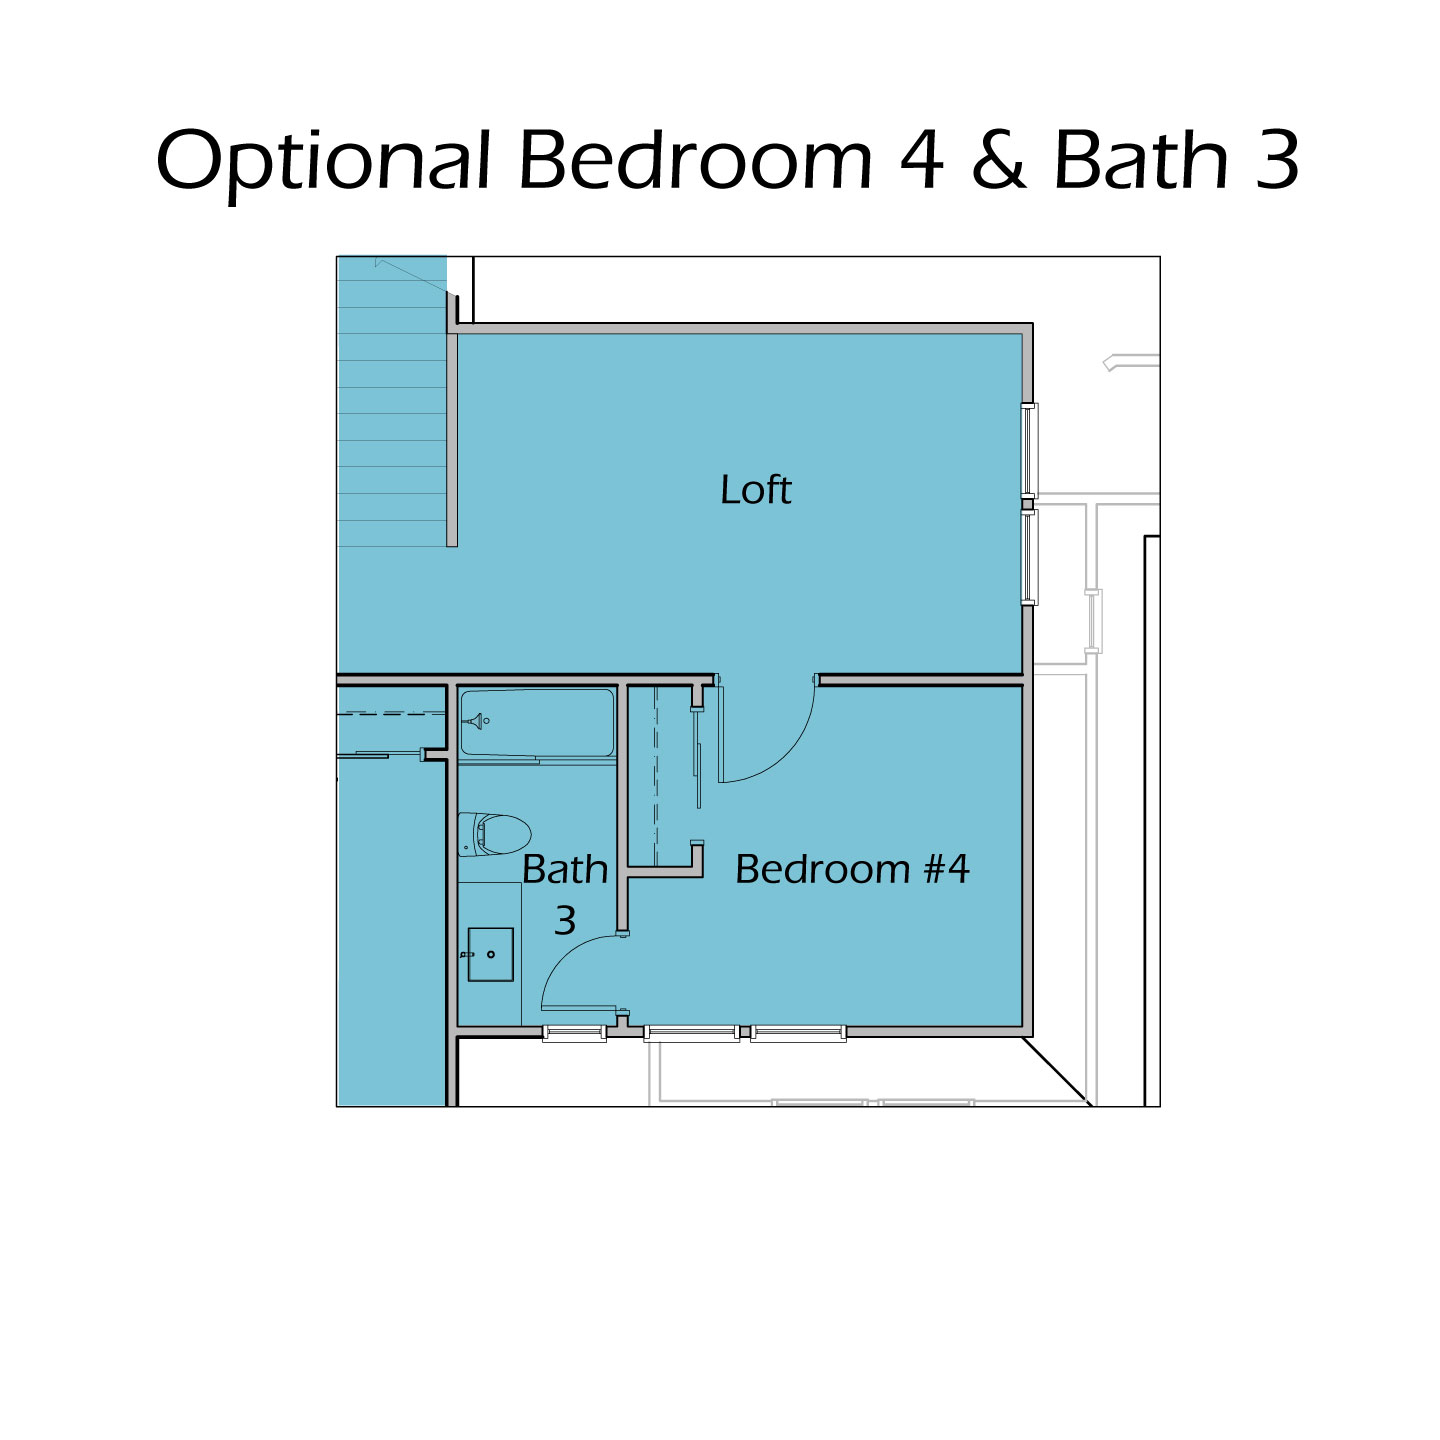 Heartland Plan T3 - Optional Bedroom 4 Bath 3